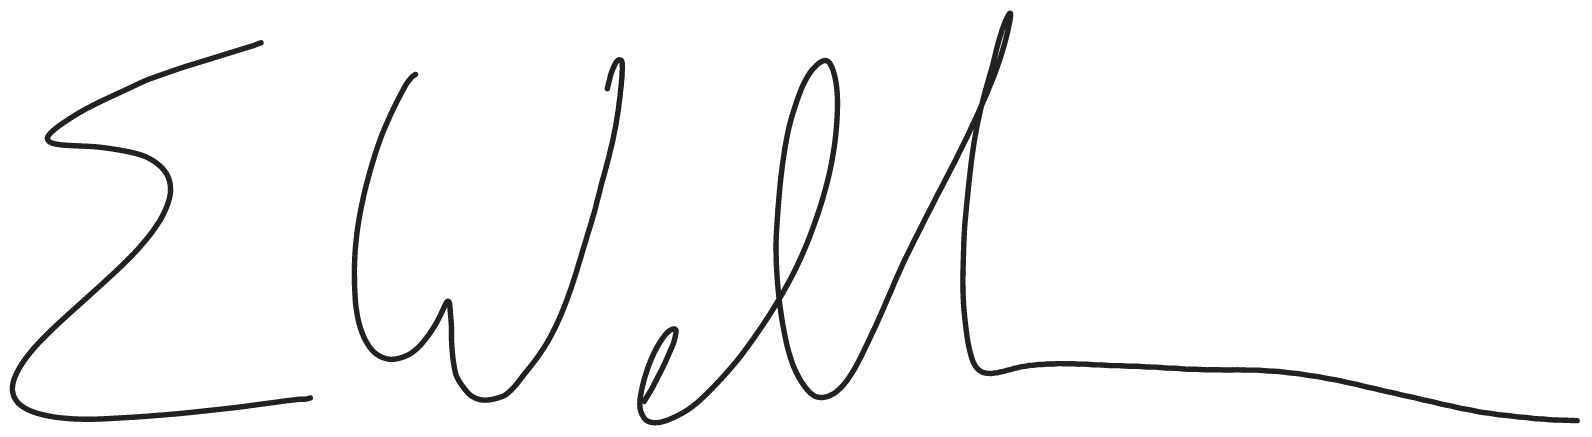 Emma Wellman's signature